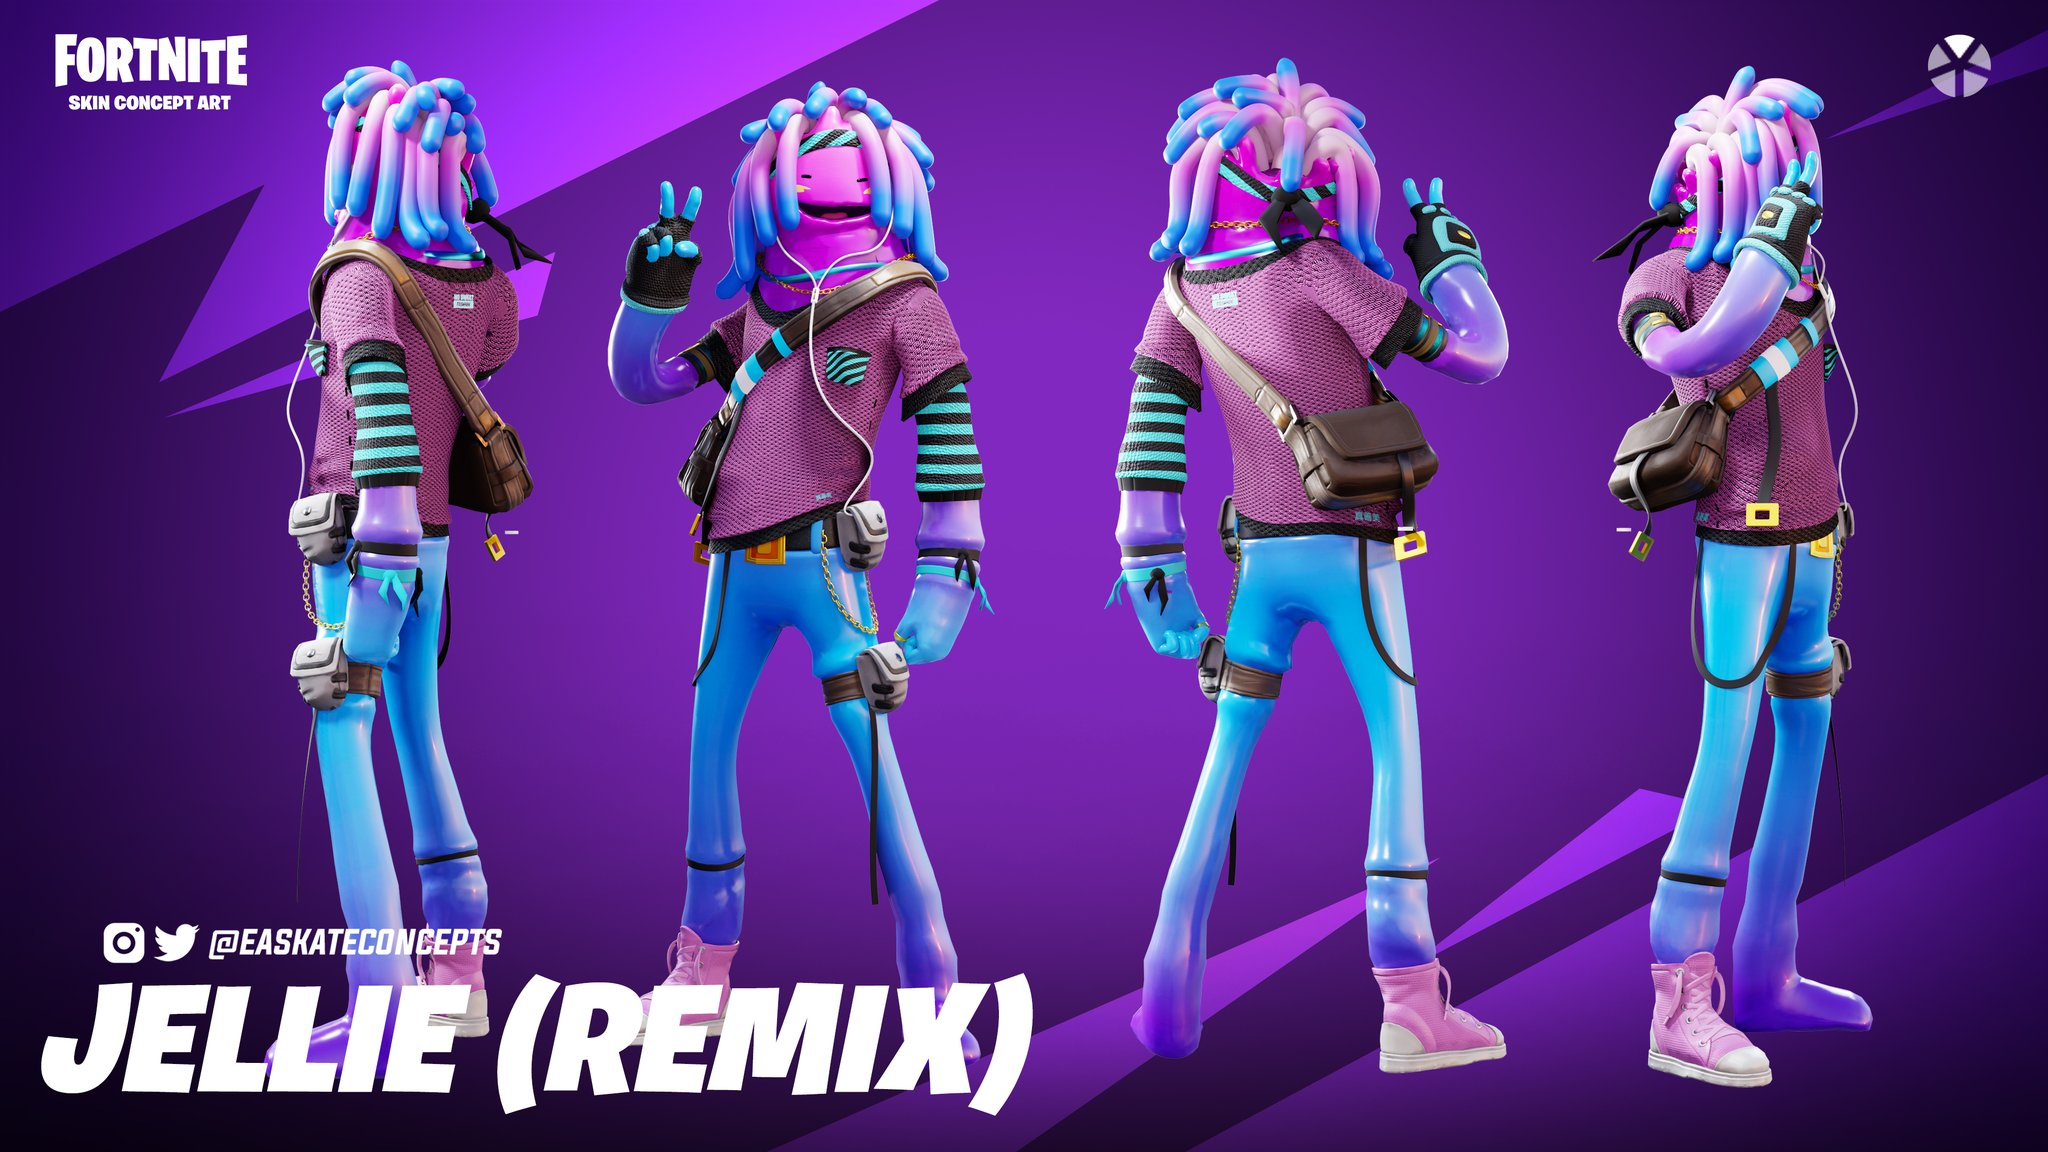 Ea On Twitter Introducing Remixed Jellie Been Itching To Go Back And Rework Some Of My Favourite Fortnite Skins With A Fresh Look Wanted To Start With Jellie Let Me Know What